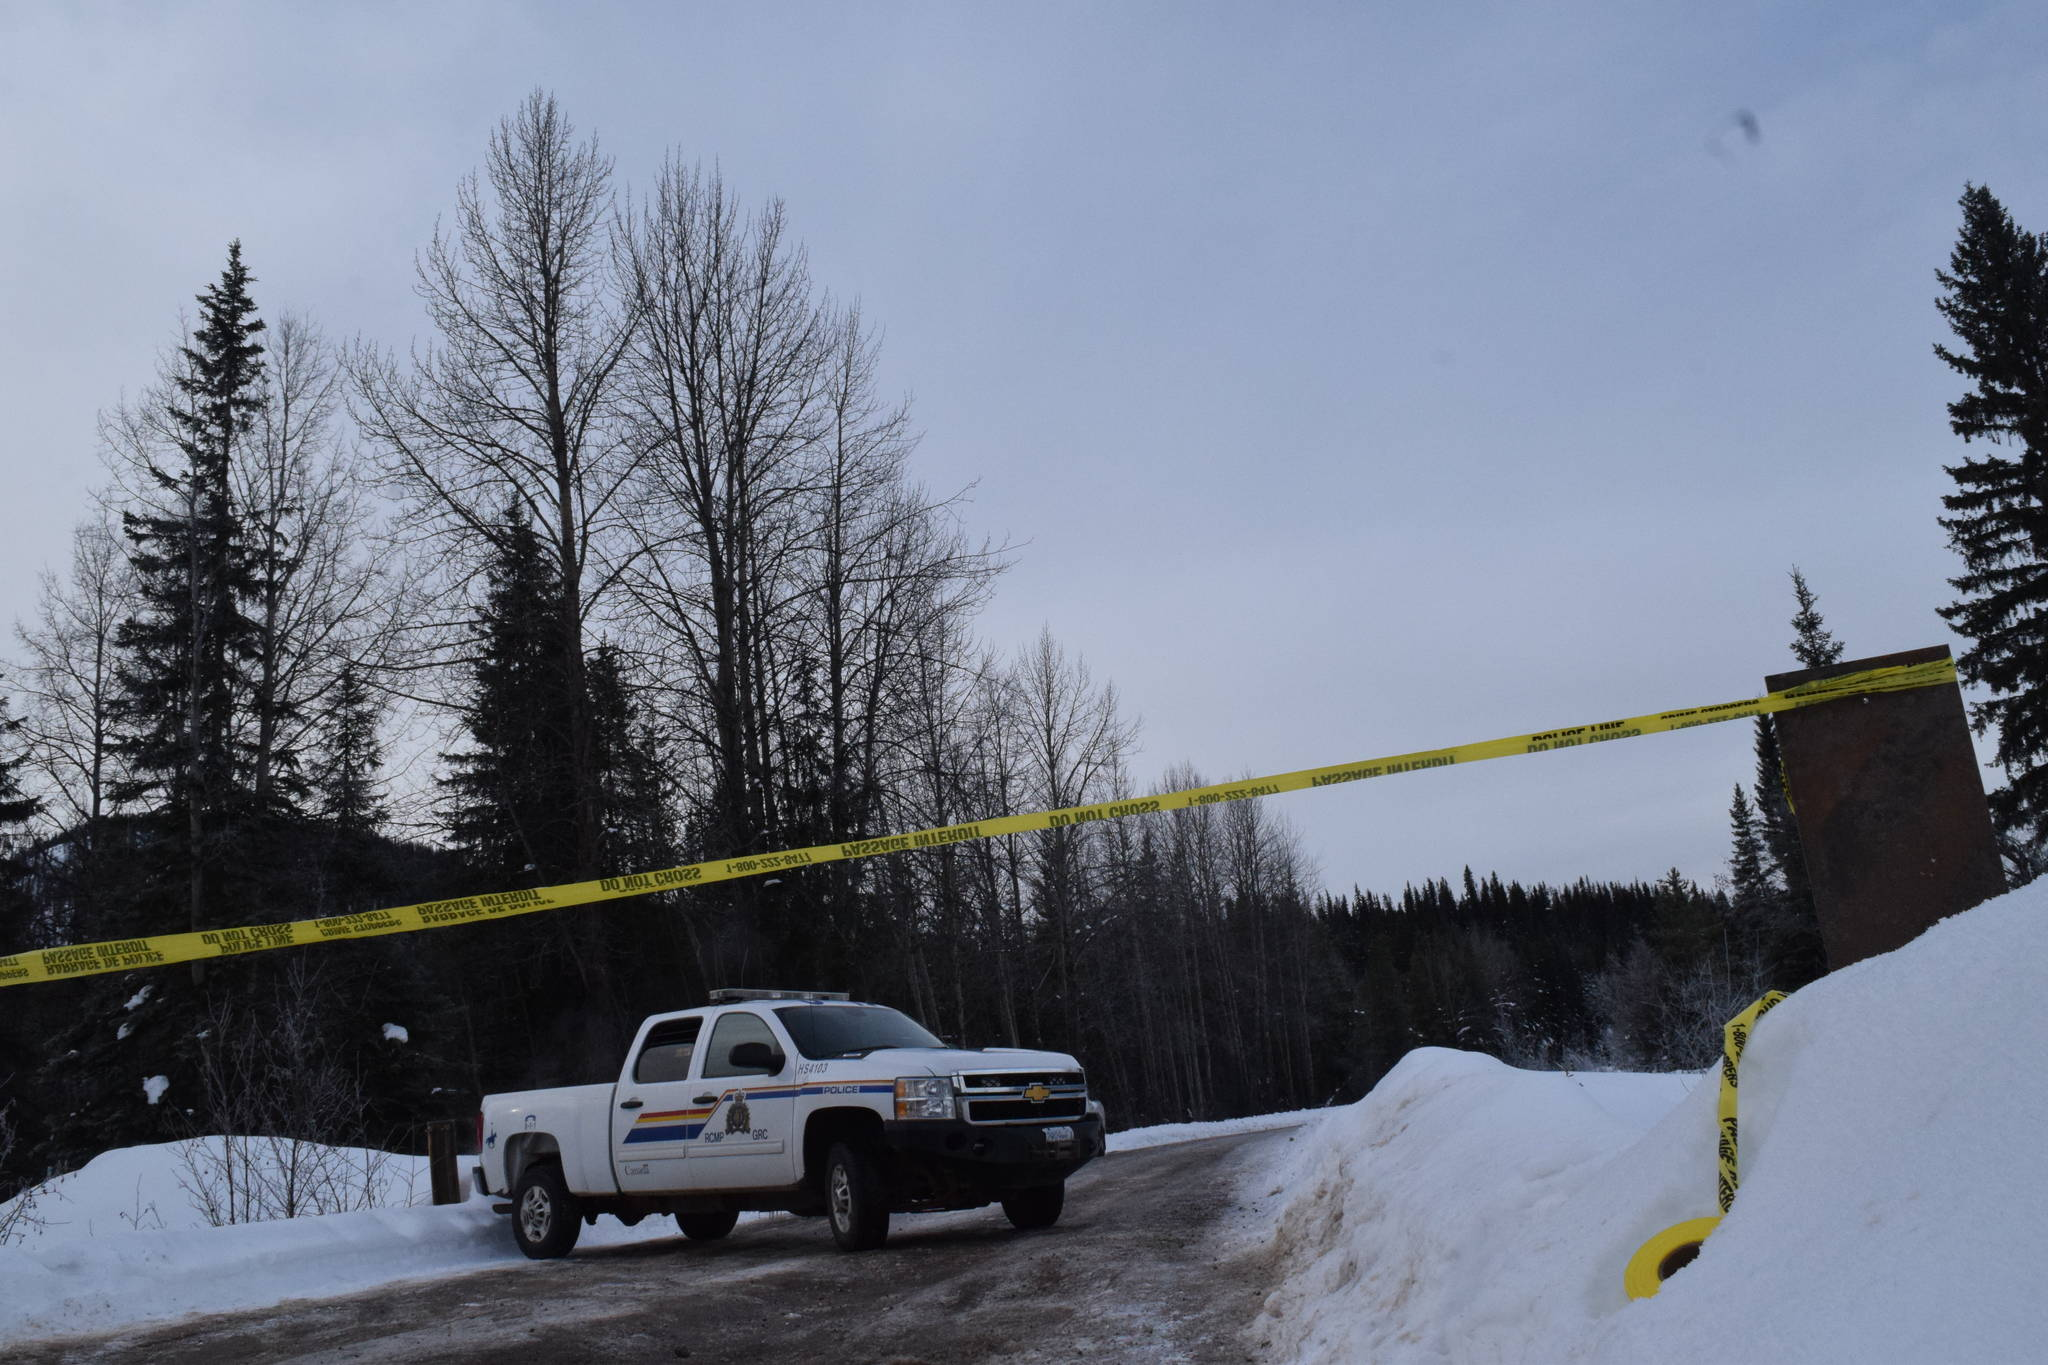 An RCMP truck is pictured at the location of an RCMP exclusion zone at the 27 kilometre point of the Morice West Forest Service Road on the afternoon of Feb. 6. The exclusion zone is in place (meaning members of the public or media are not permitted to enter) while RCMP members carry out the enforcement of a B.C. Supreme Court injunction relating to the dispute between Wet'suwet'en hereditary chiefs and Coastal GasLink. Prior to this the location of the exclusion zone was an access control checkpoint. (Trevor Hewitt photo)